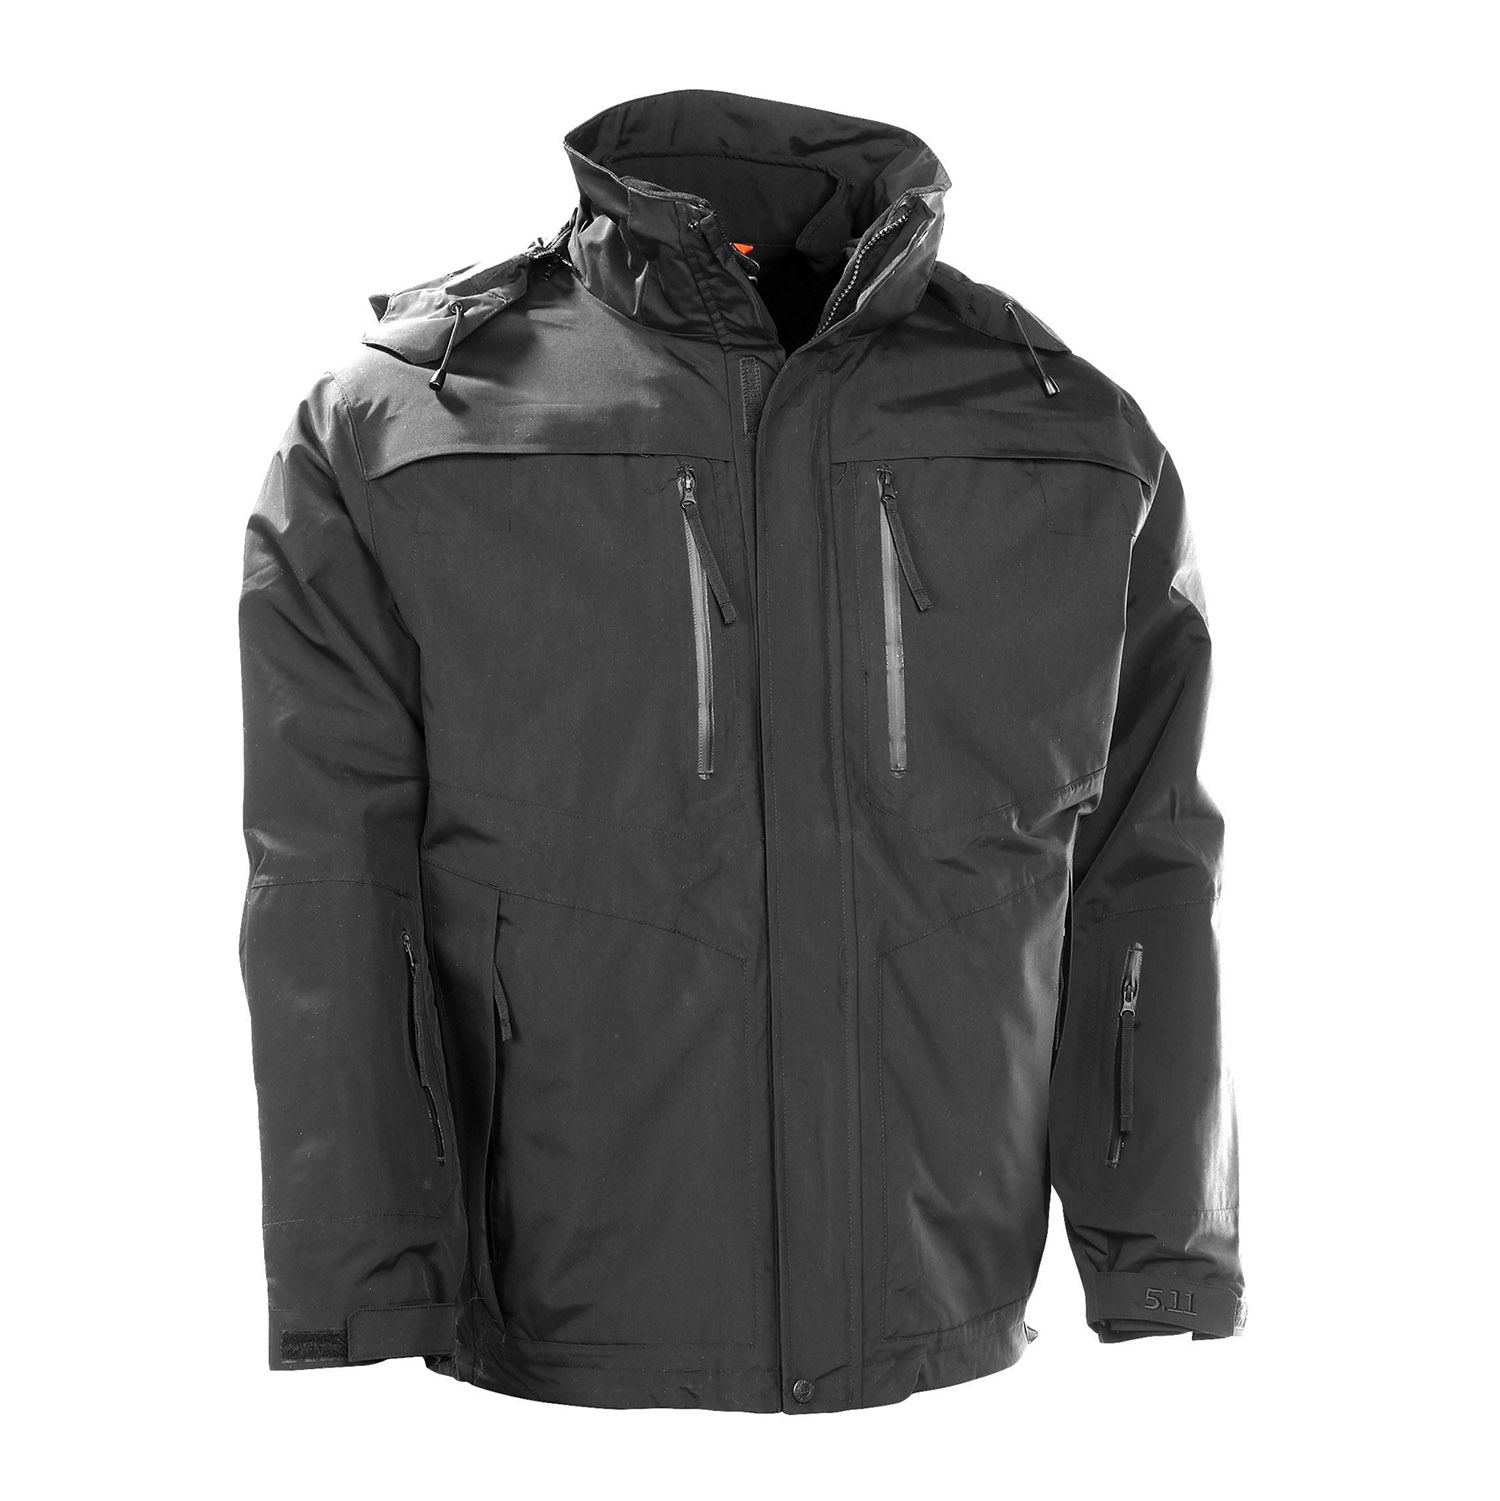 5.11 Tactical Bristol 3 in 1 Jacket